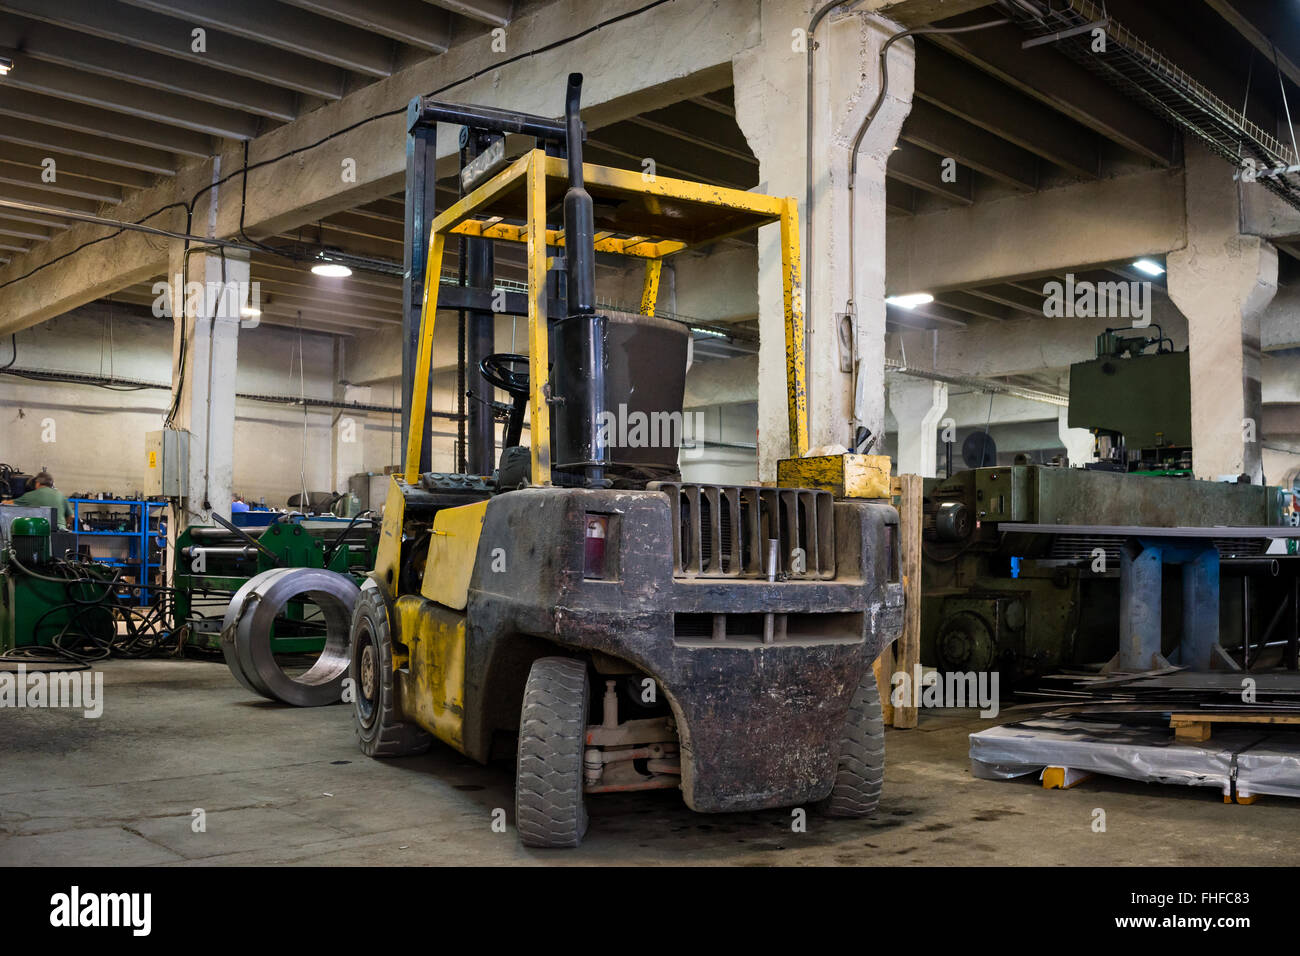 close-up of a yellow forklift, with no driver, parked inside an industrial hall, with green industrial machinery Stock Photo